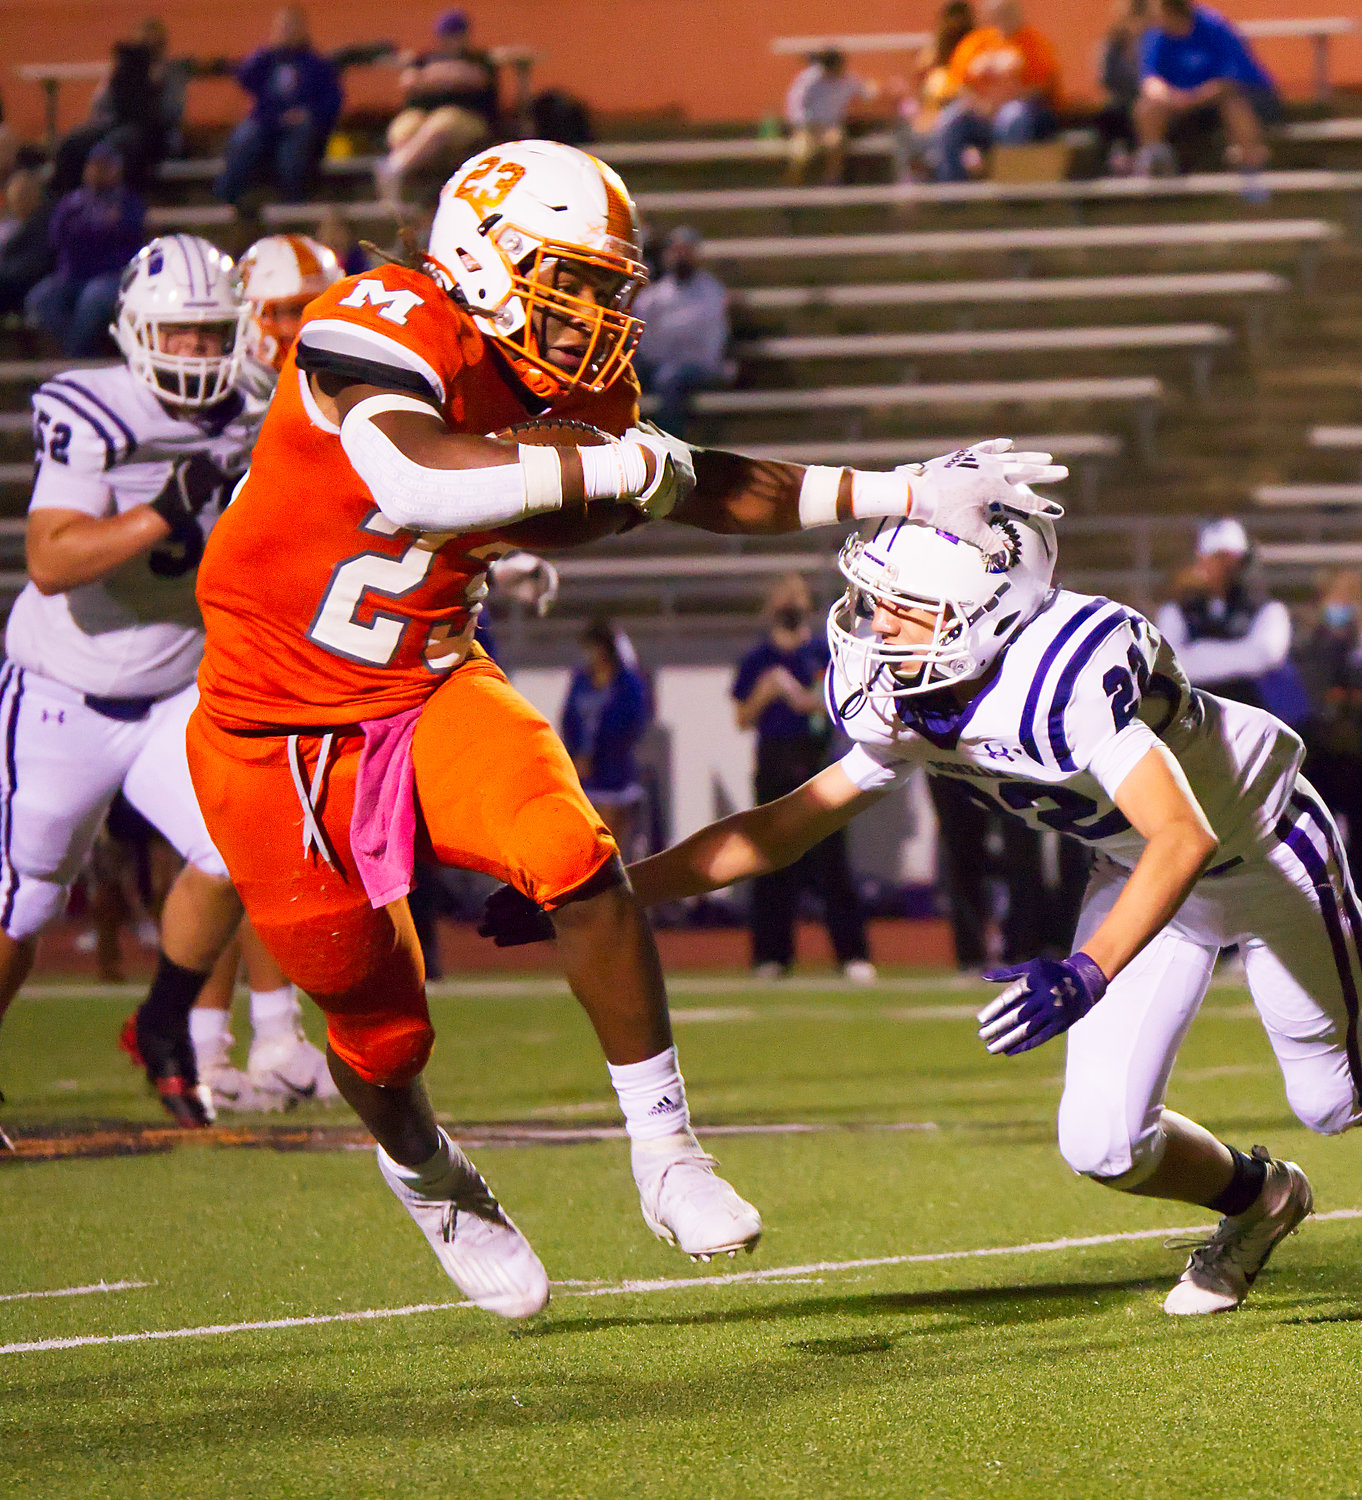 Trevion Sneed of Mineola avoids a would-be tackler in the game against Bonham. (Monitor photo by Sam Major)